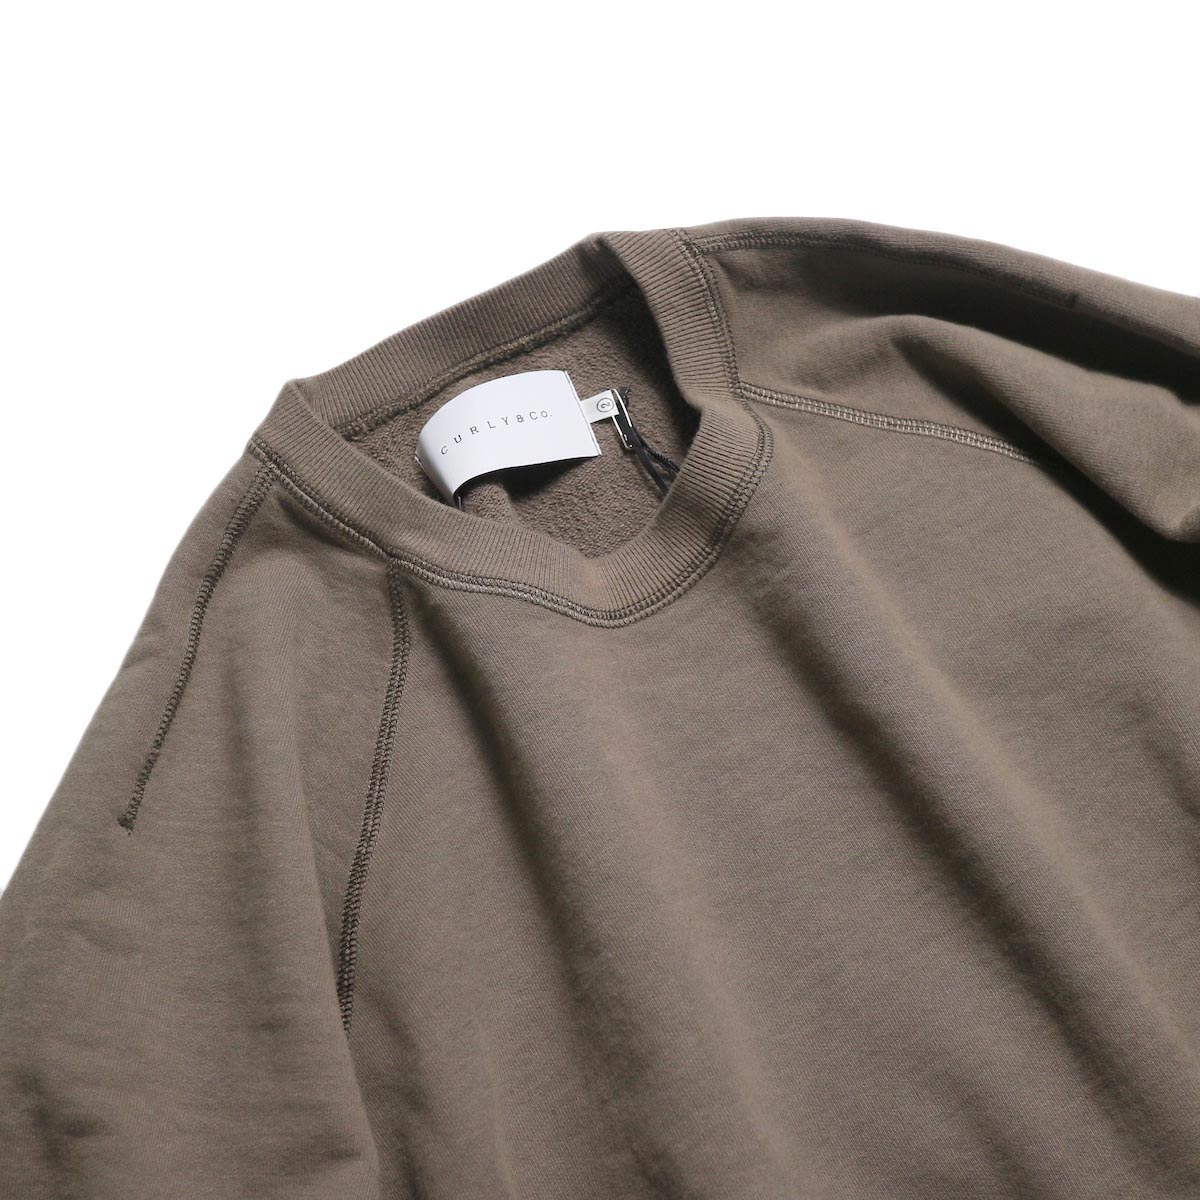 CURLY / Frosted Crew Sweat -Grage 首元